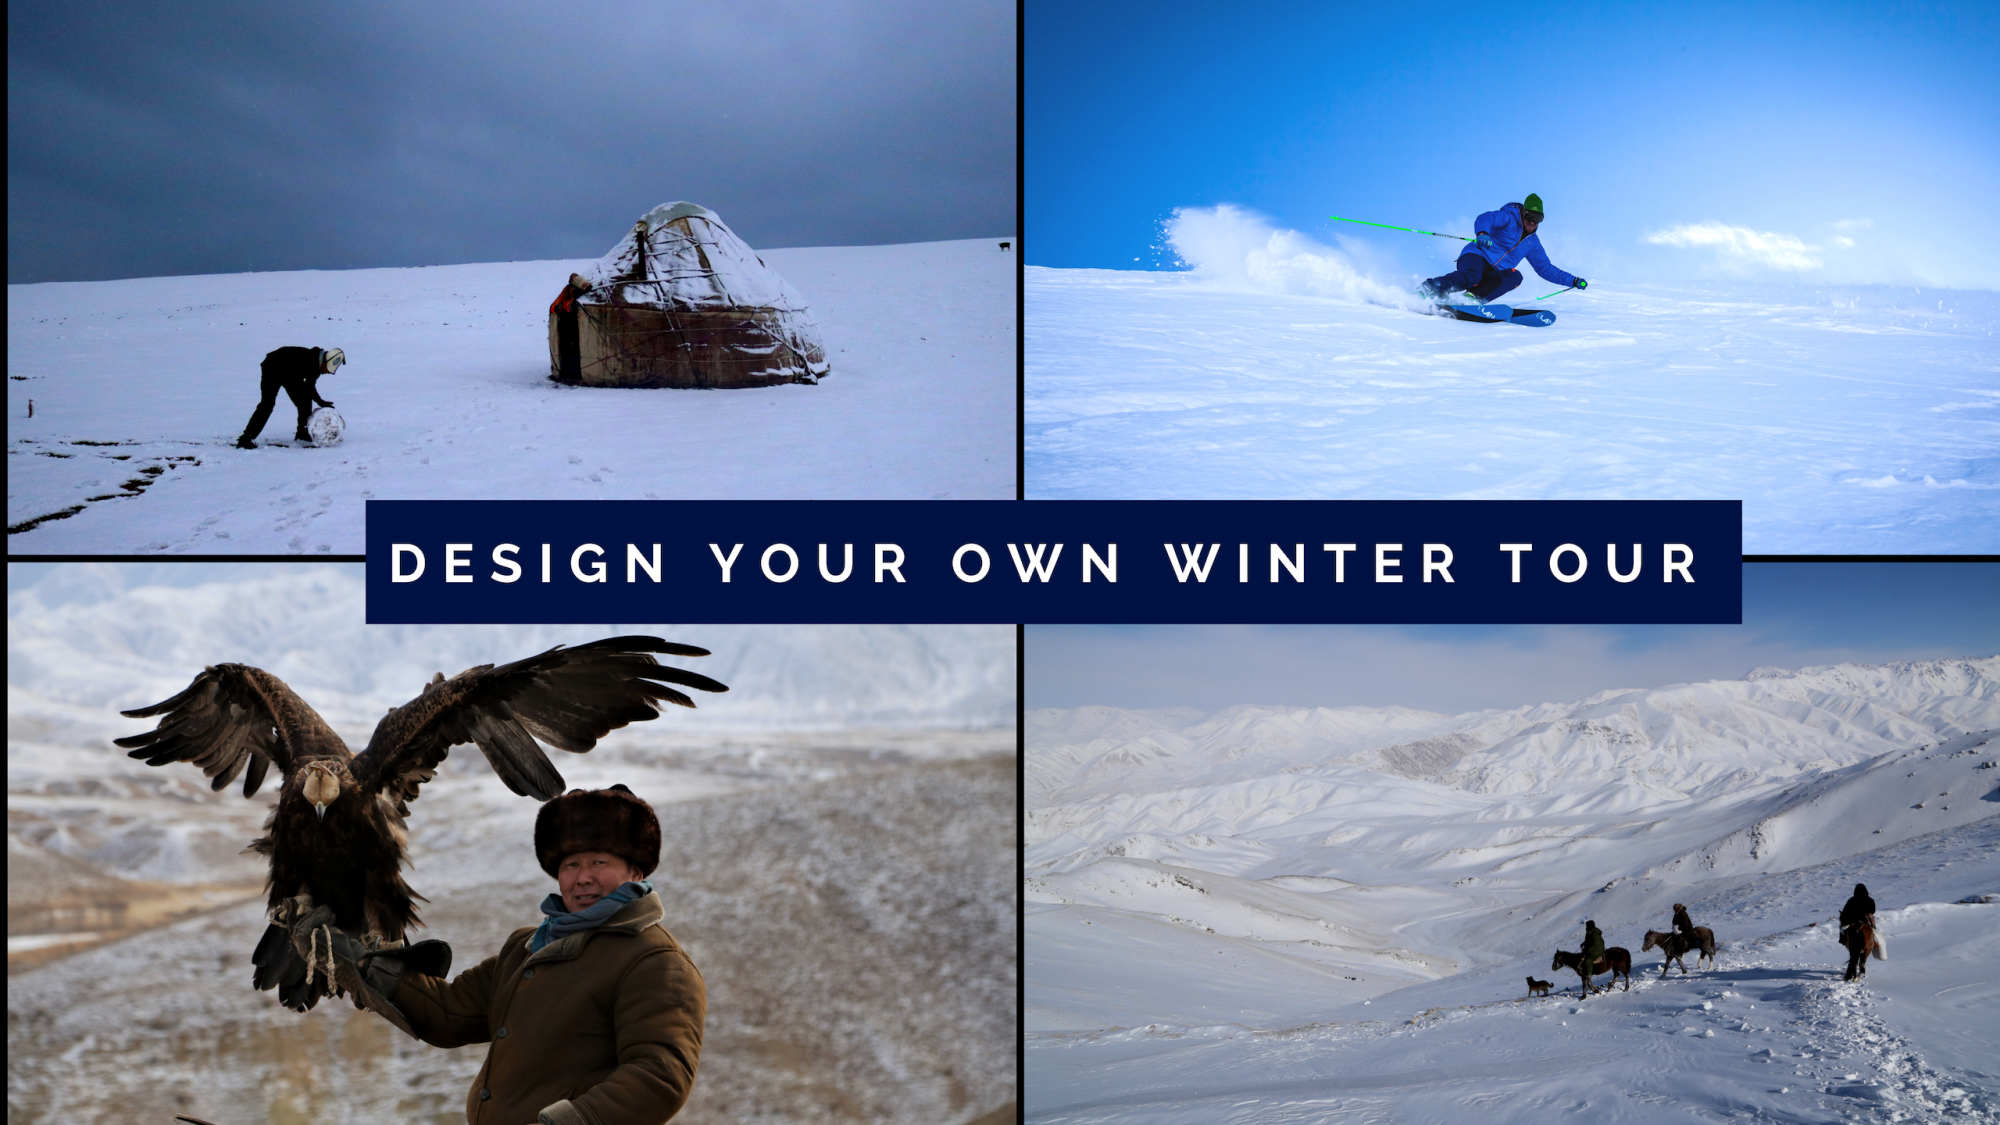 Design Your Own Winter Tour